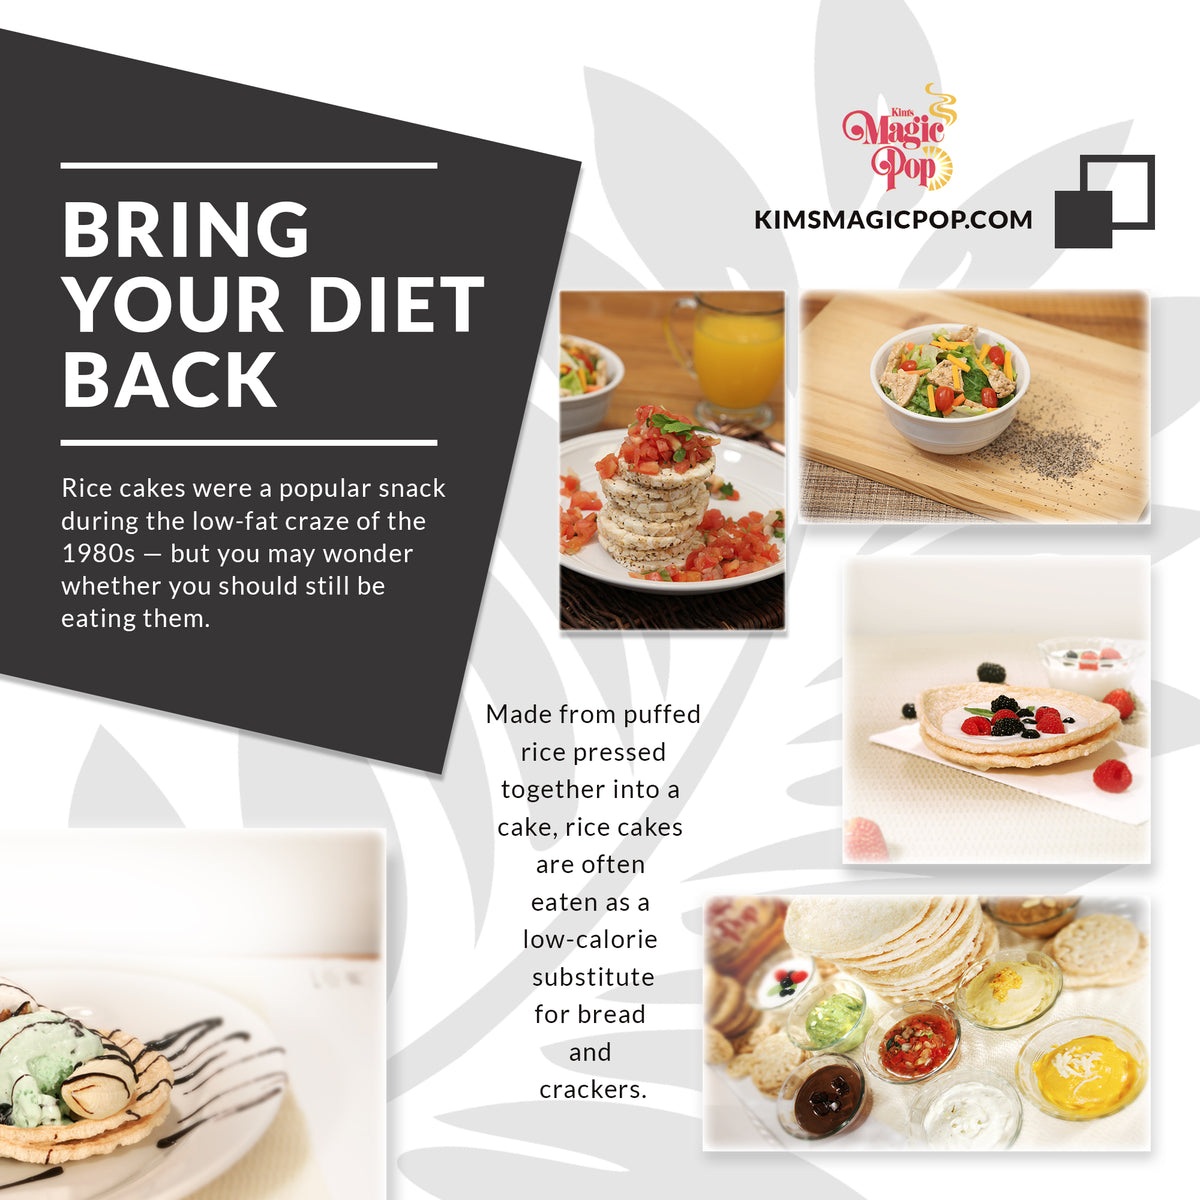 Bring Your Diet Back!